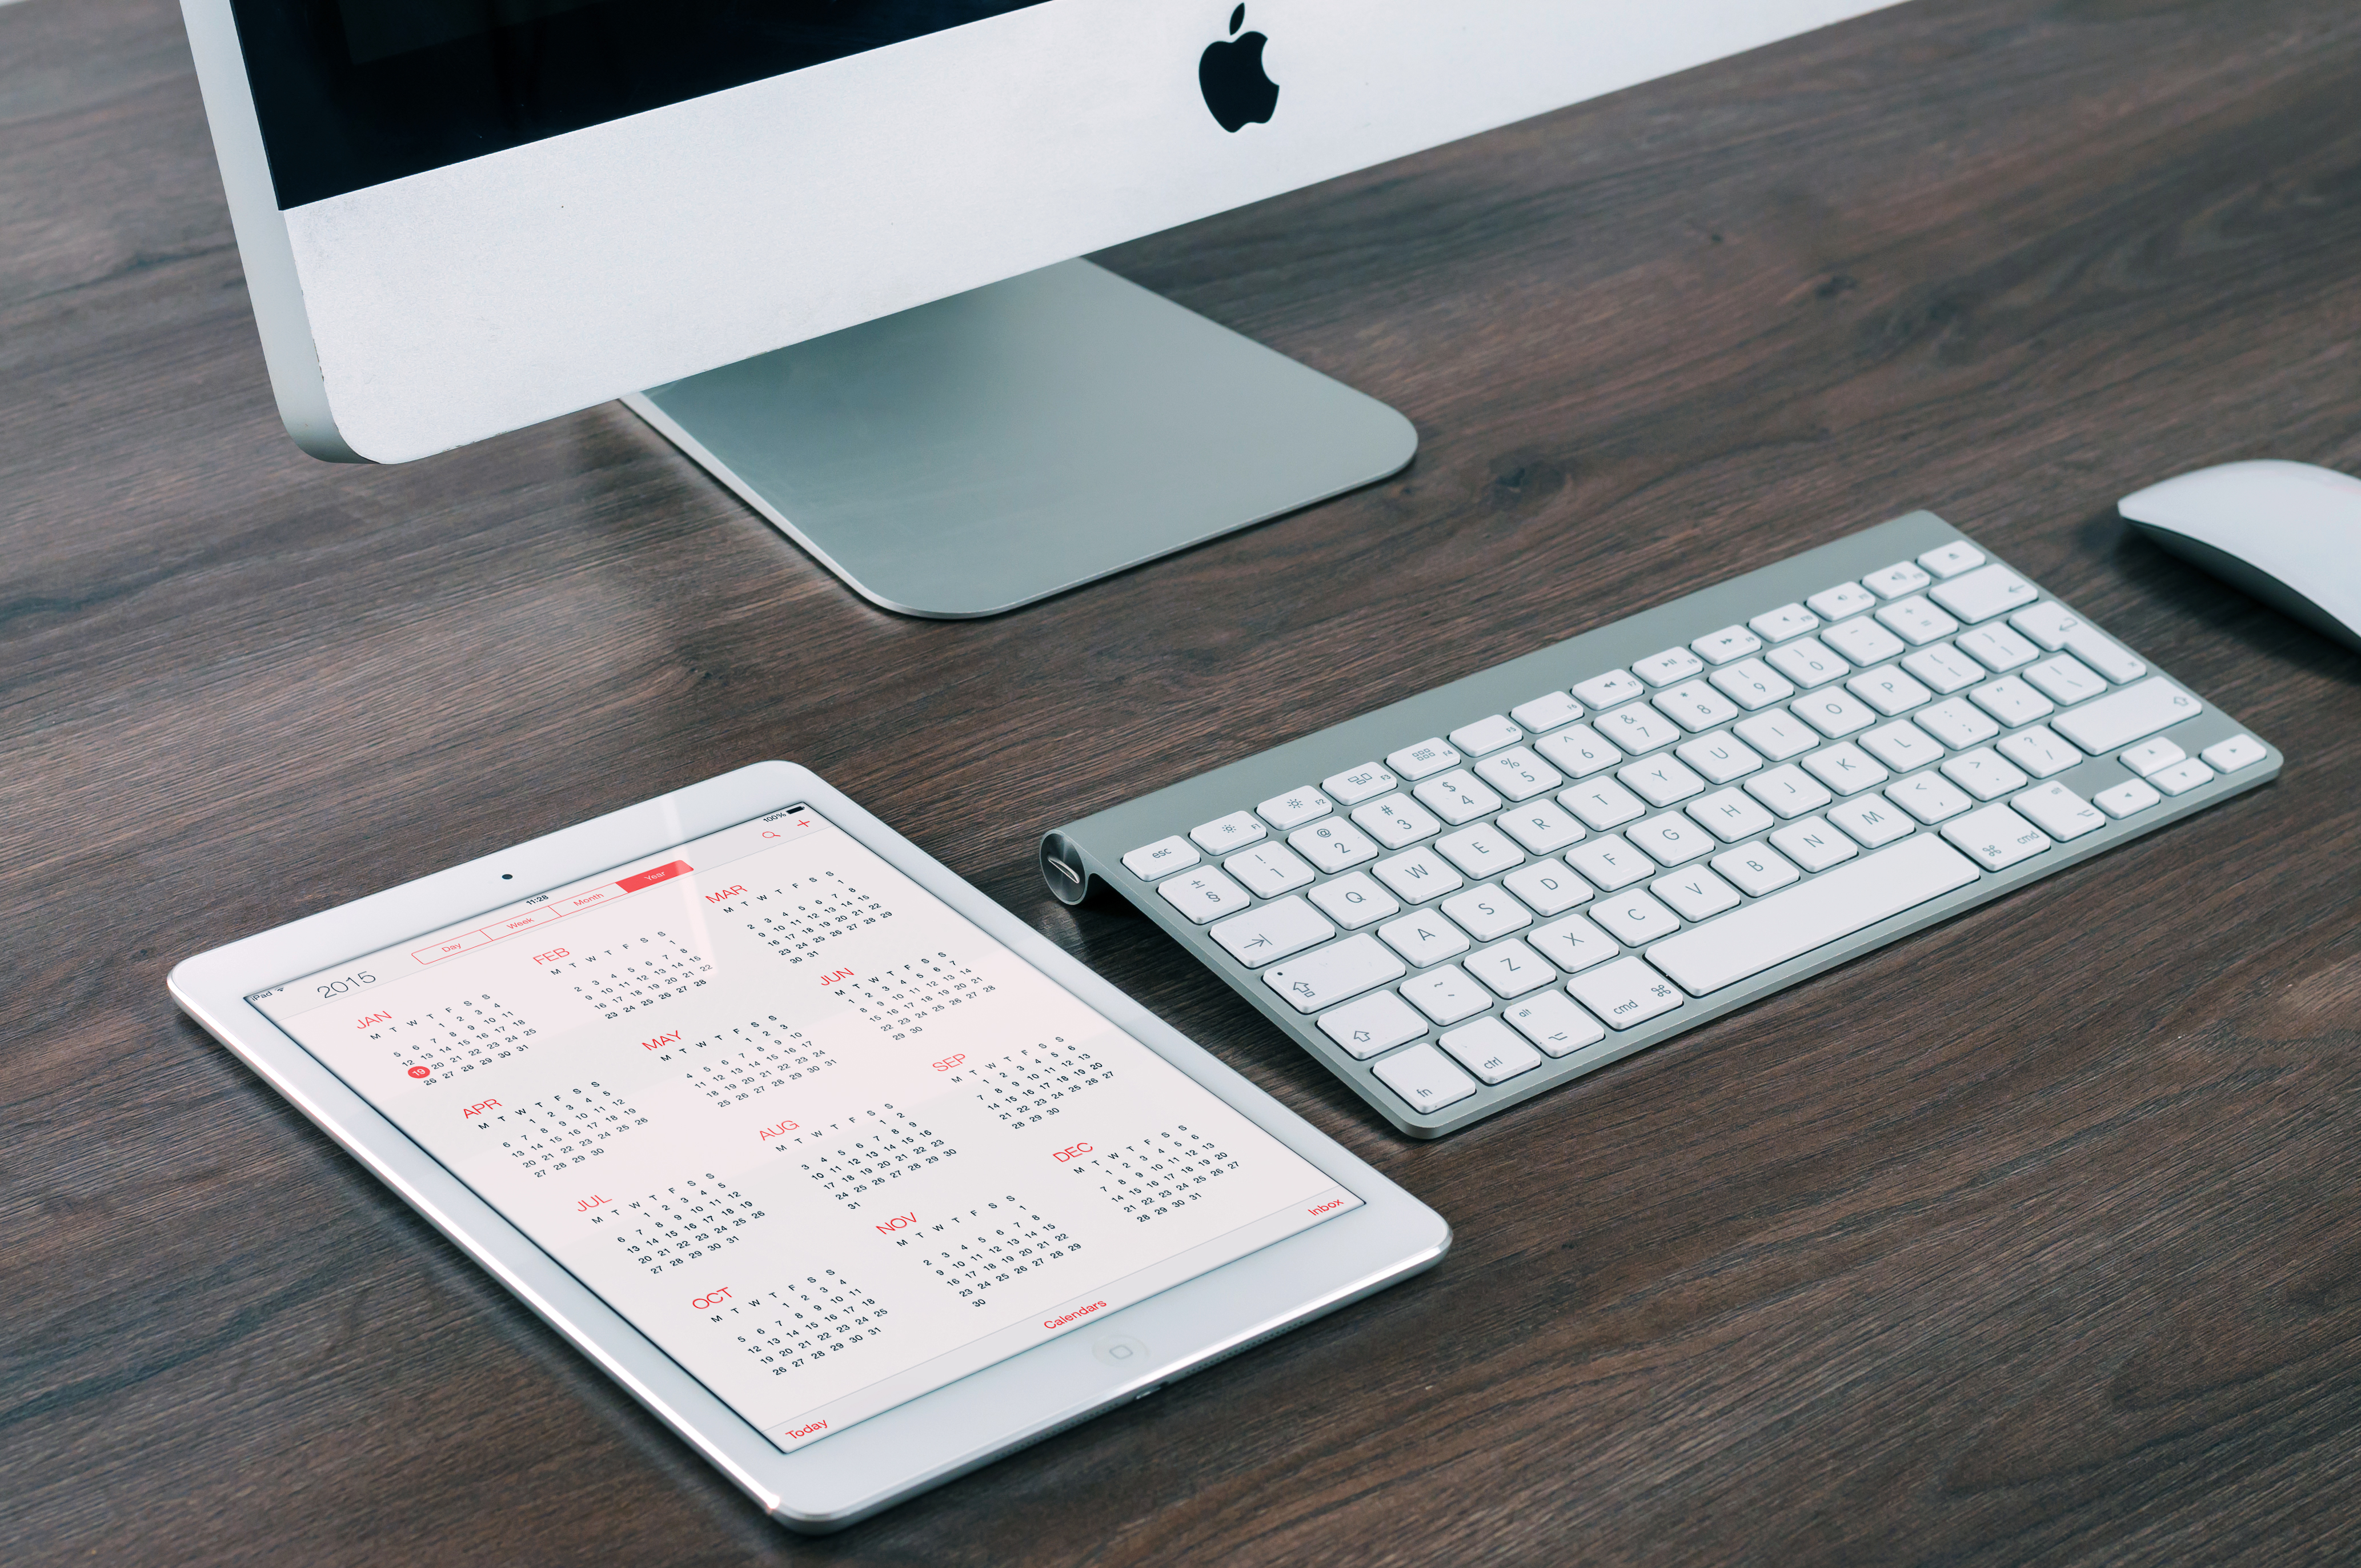 apple-desk-working-technology